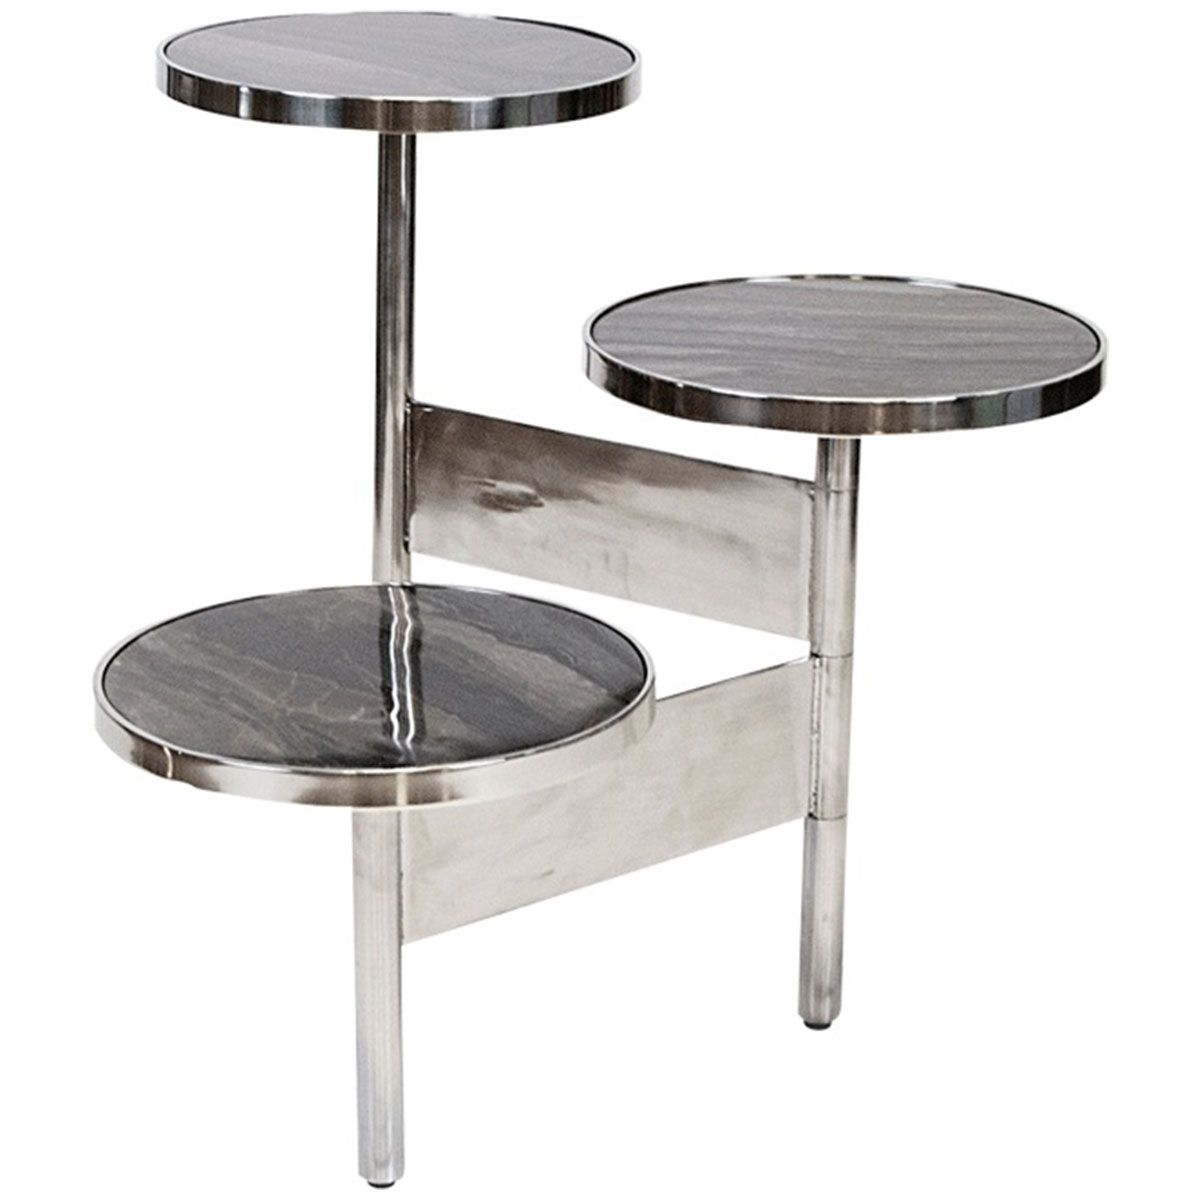 Worlds Away 3 Tier Hinged Table With Marble Tops Stainless Steel Side Table Stainless Steel Table Black Marble Side Tables